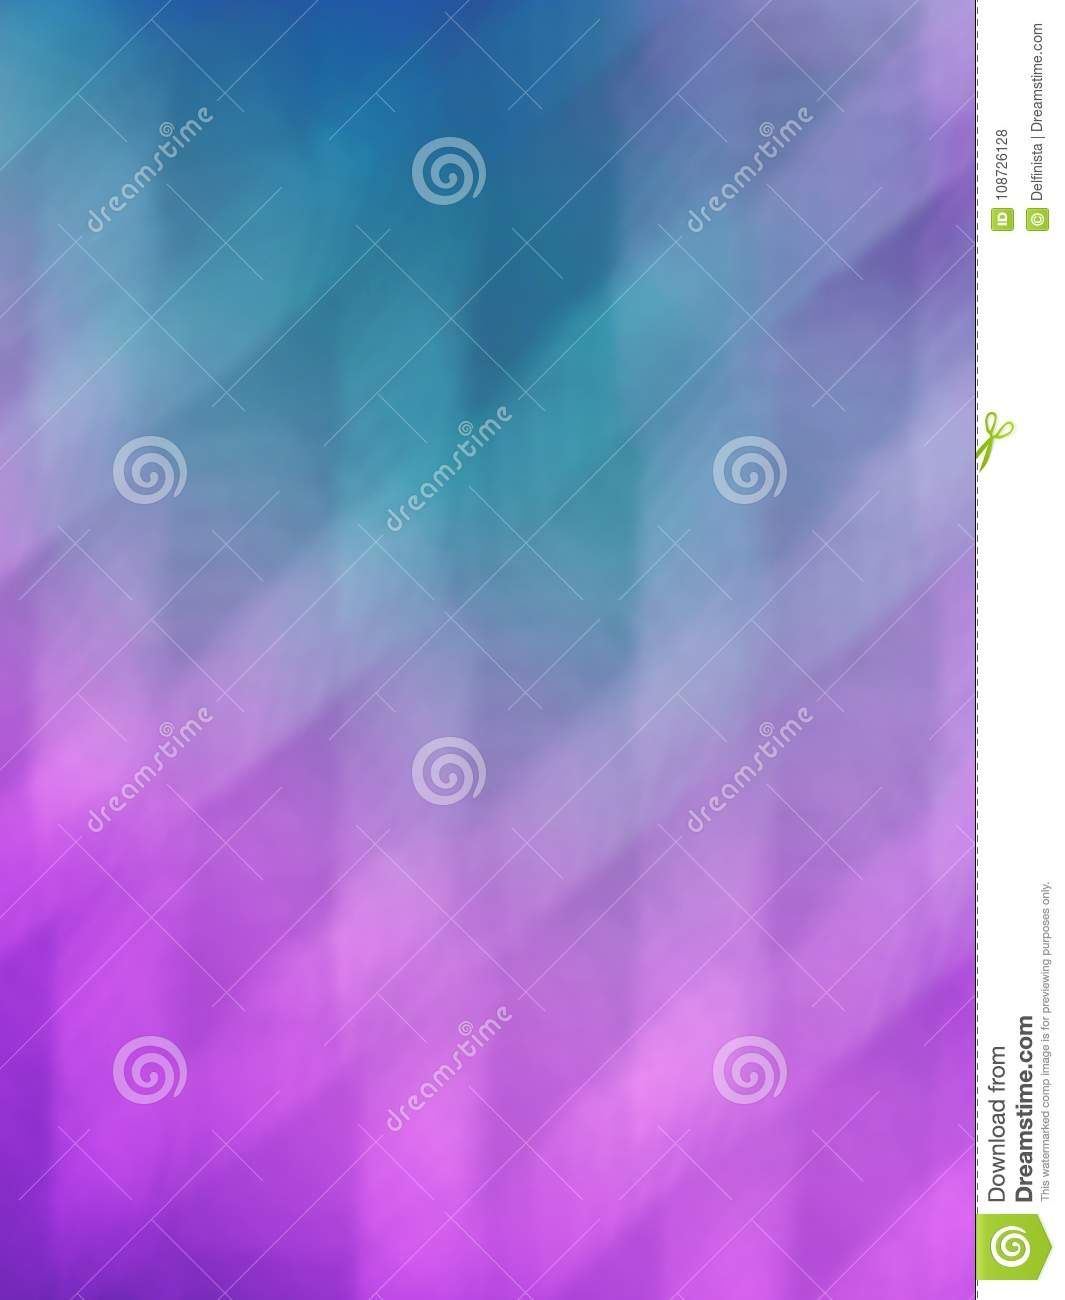 Photo About Turquoise Purple Abstract Background High Tech